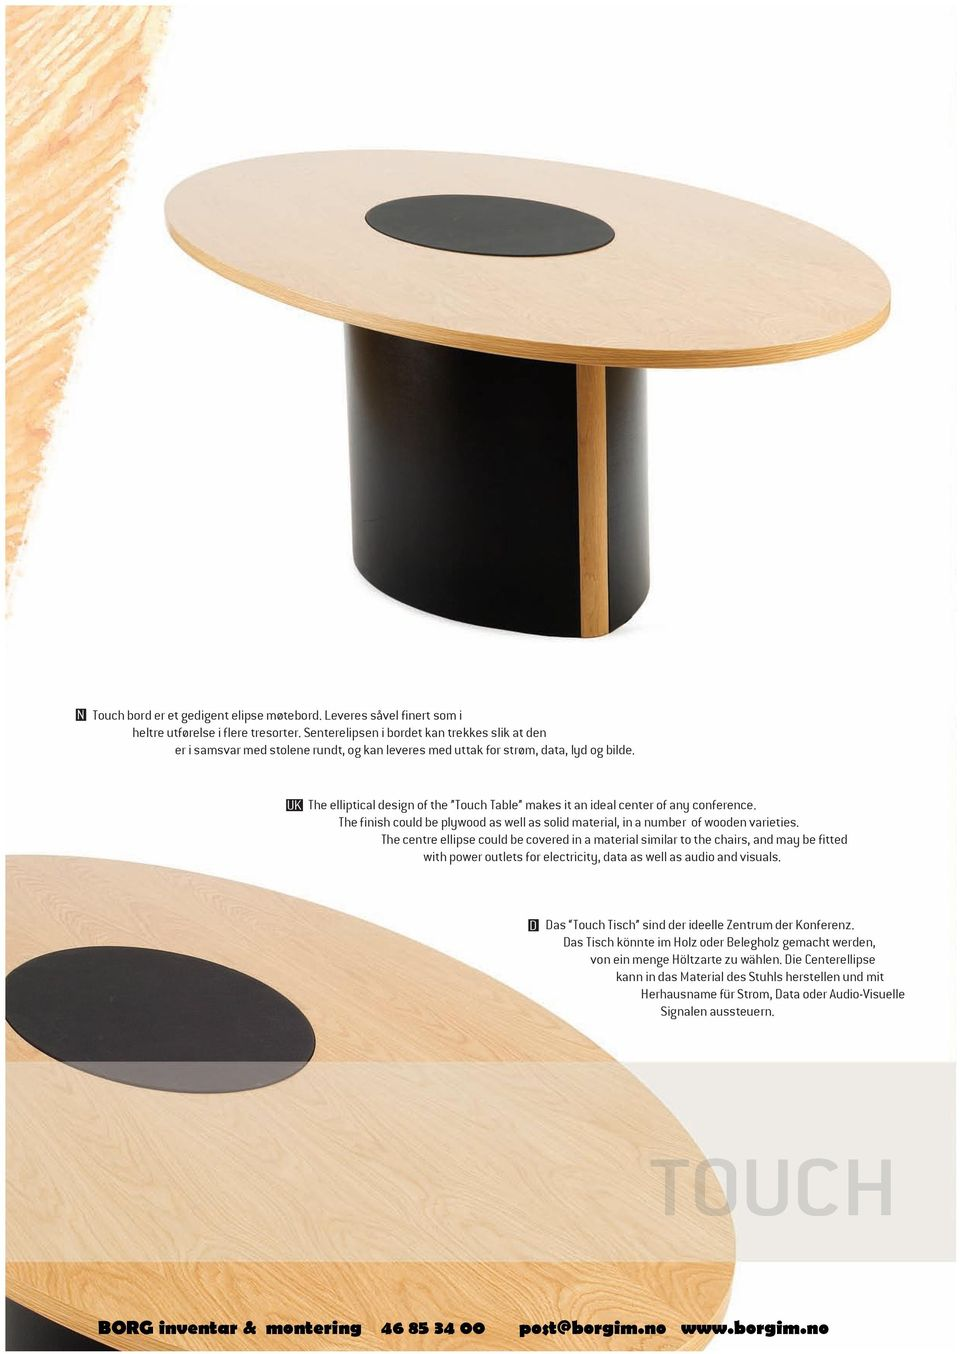 UK The elliptical design of the Touch Table makes it an ideal center of any conference. The finish could be plywood as well as solid material, in a number of wooden varieties.